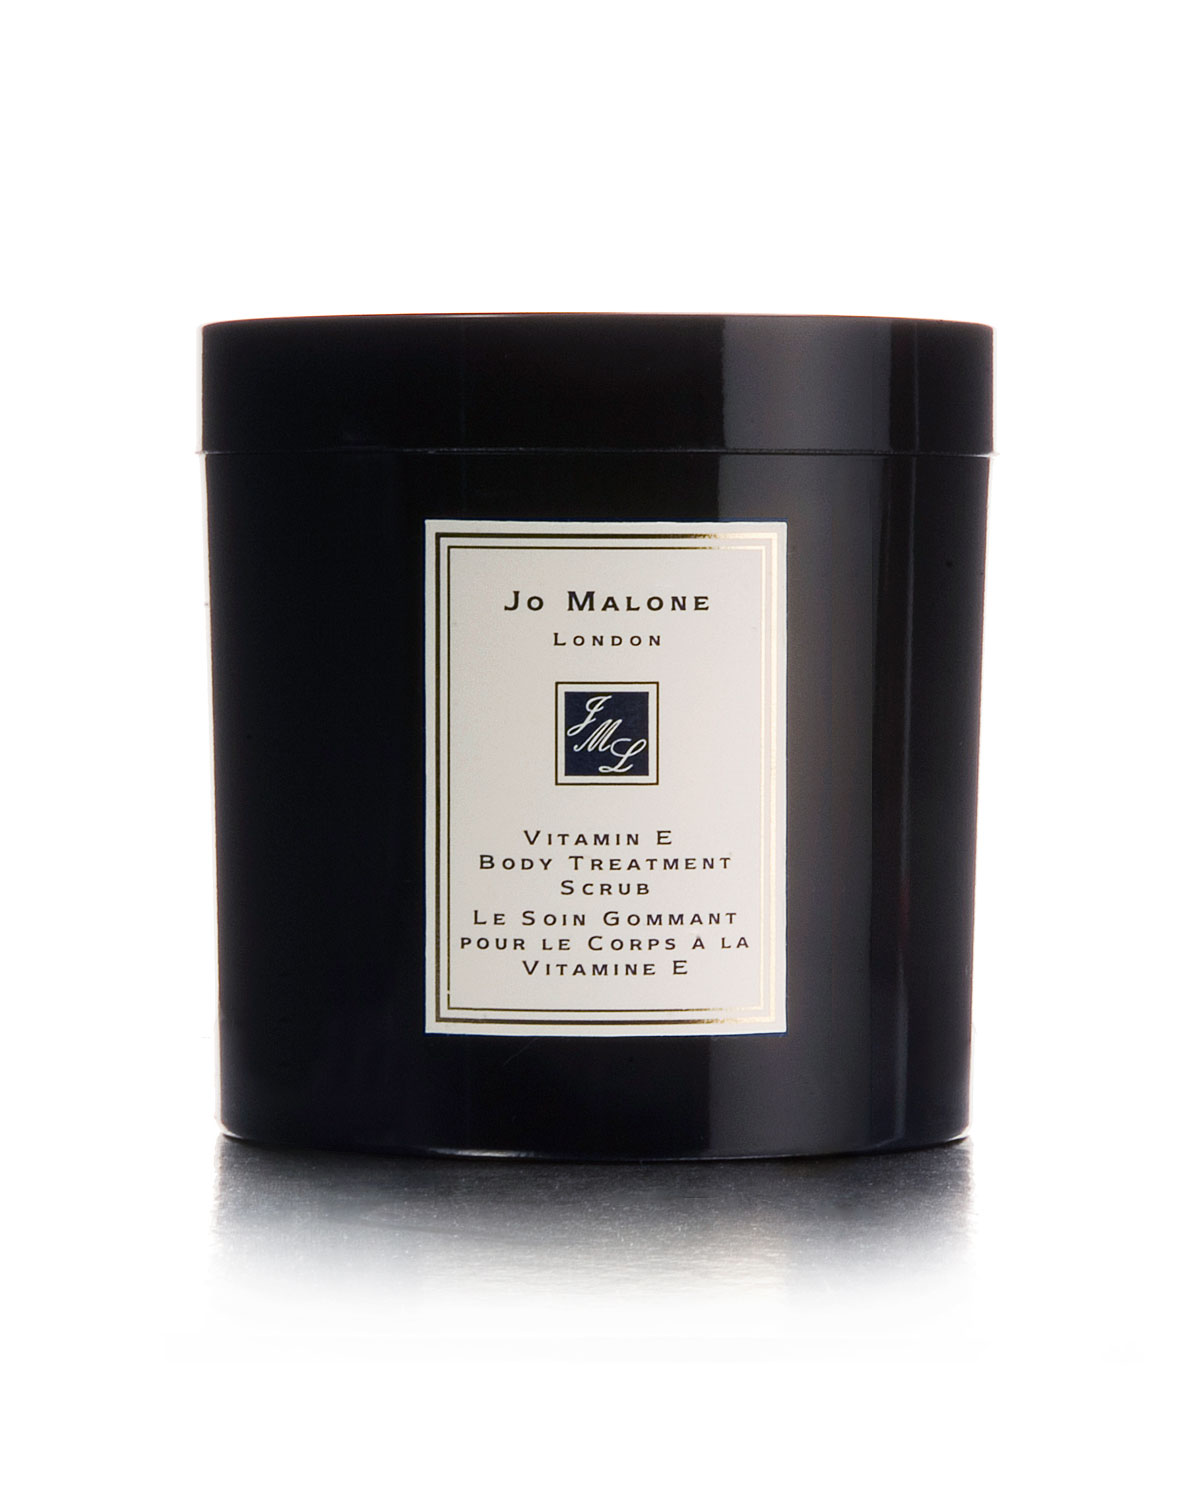 The ultimate in pamper-yourself products, I could literally bathe in this Jo Malone Vitamin E Scrub ($85). It leaves skin unbelievably soft and smells amazing. — Hannah Weil, associate editor